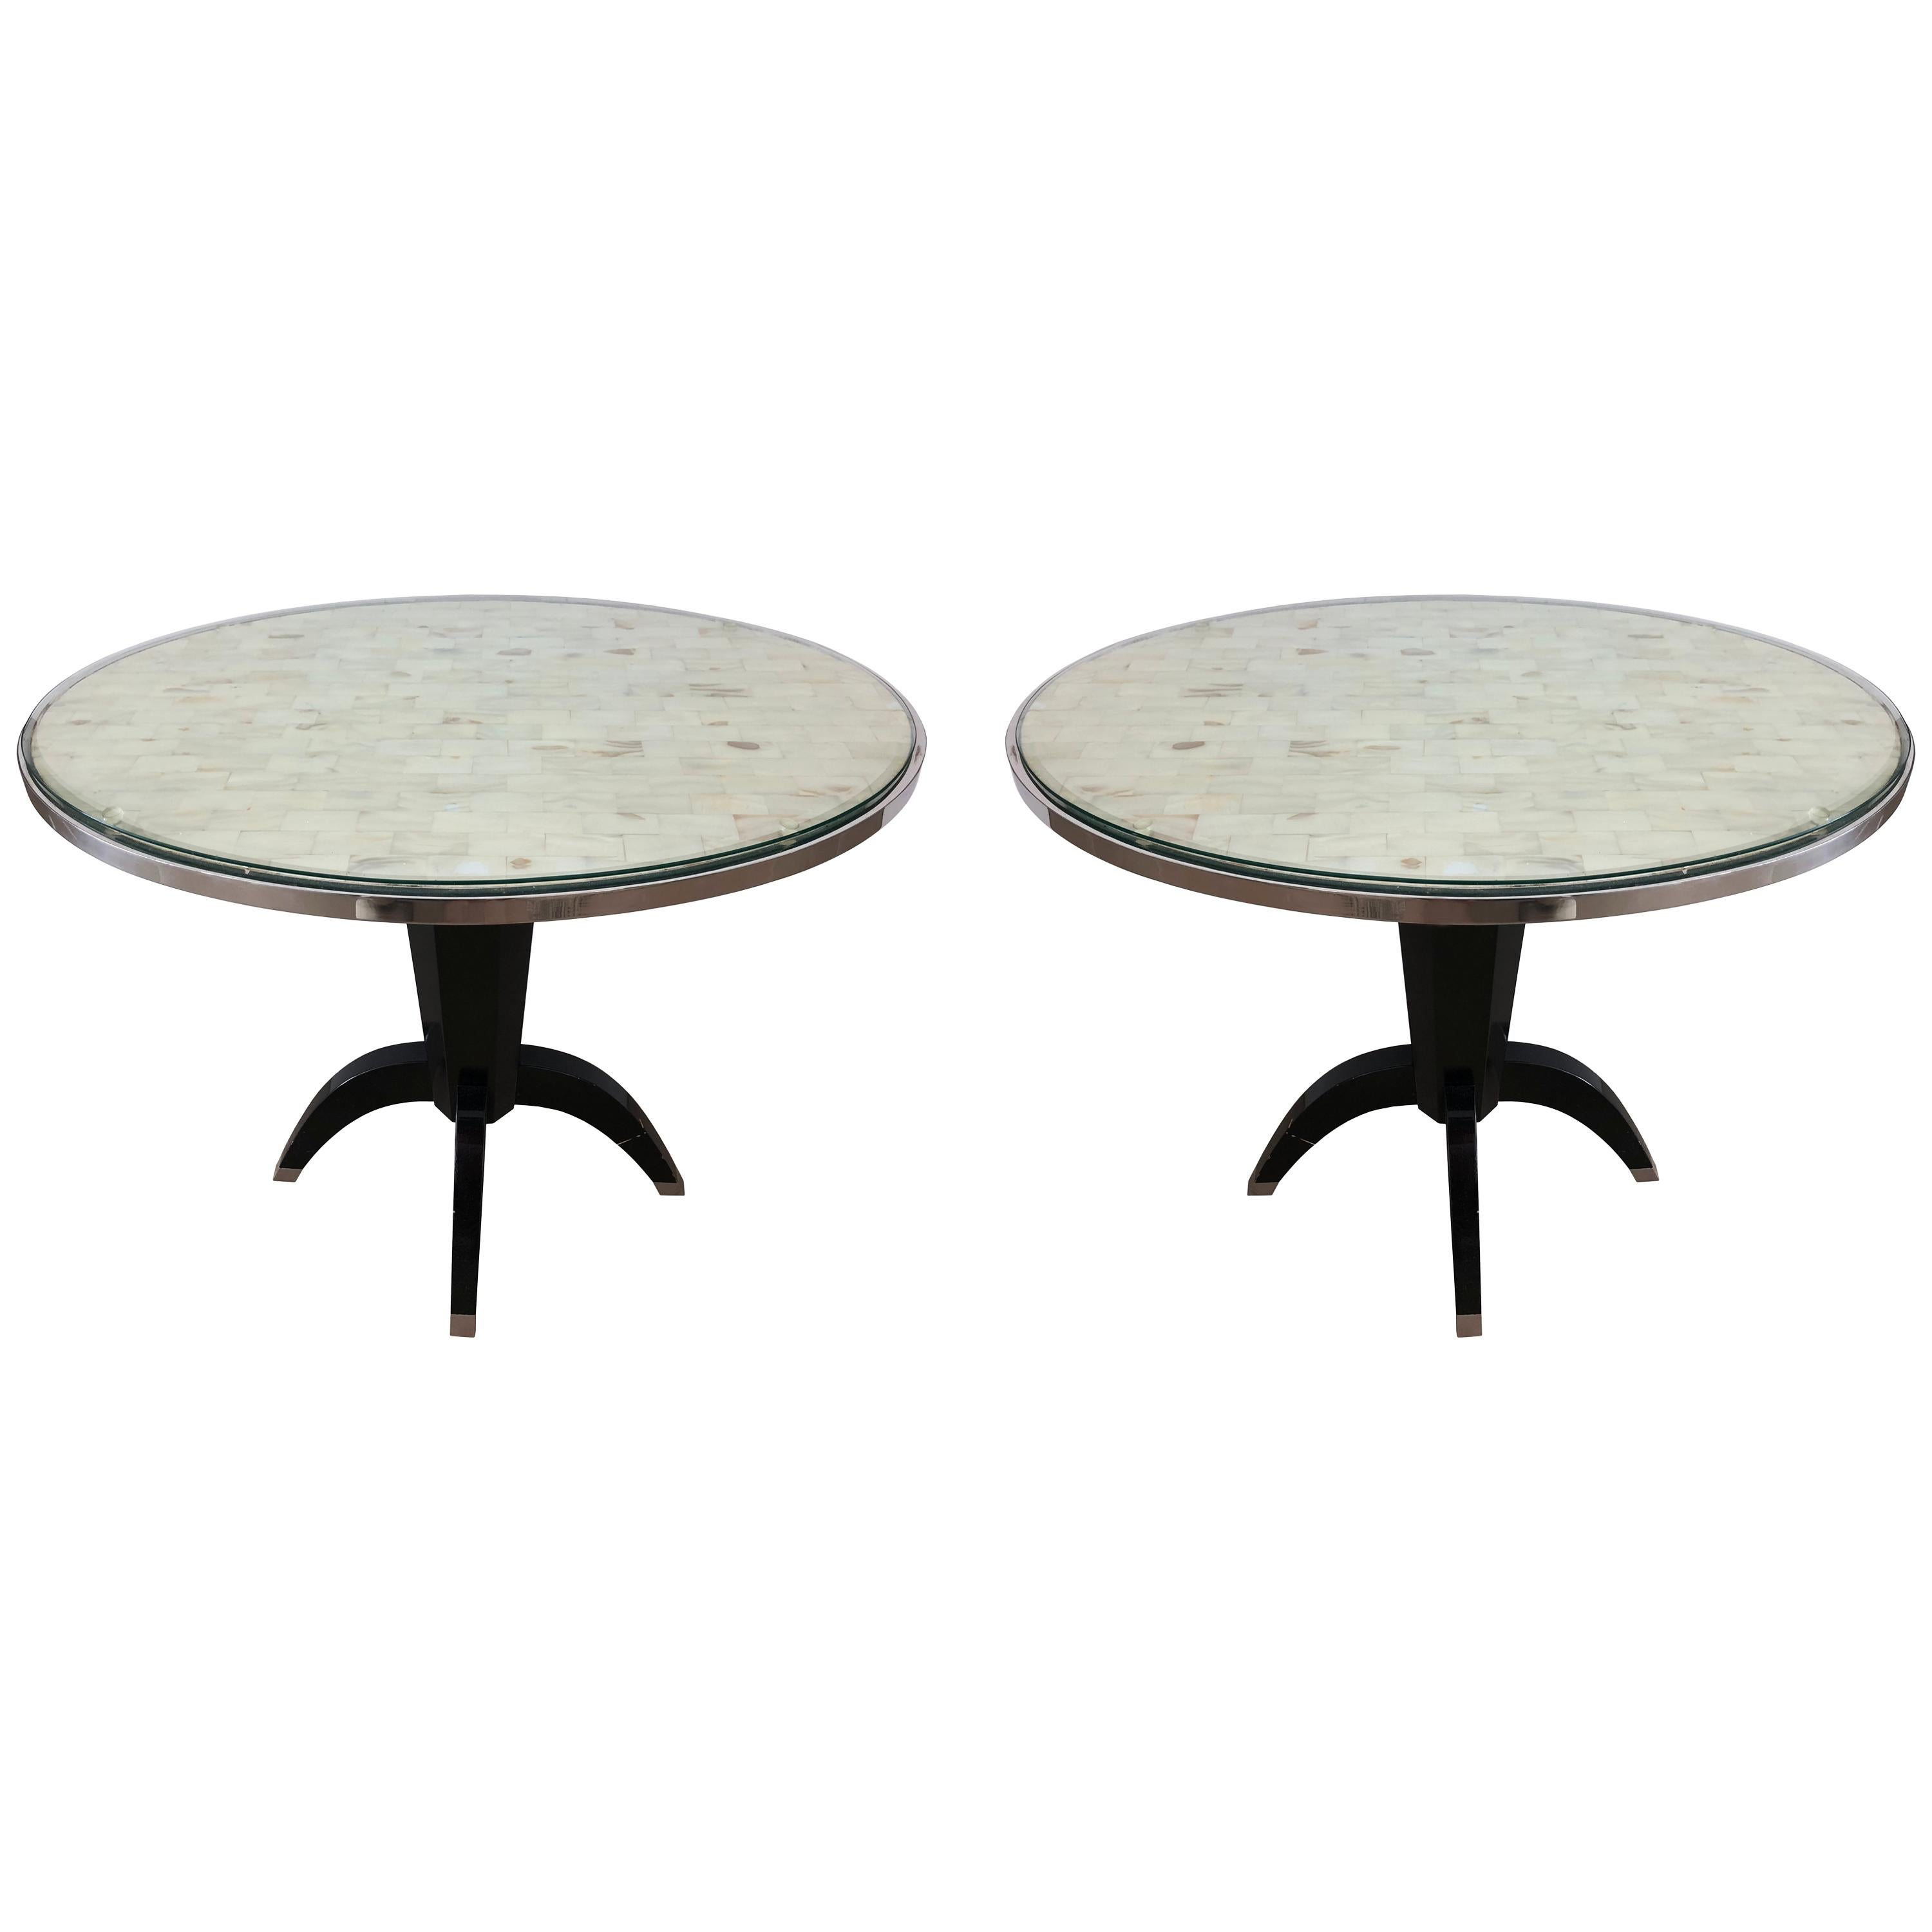 Oval Side Tables with Mother of Pearl Top and Black Lacquered Base